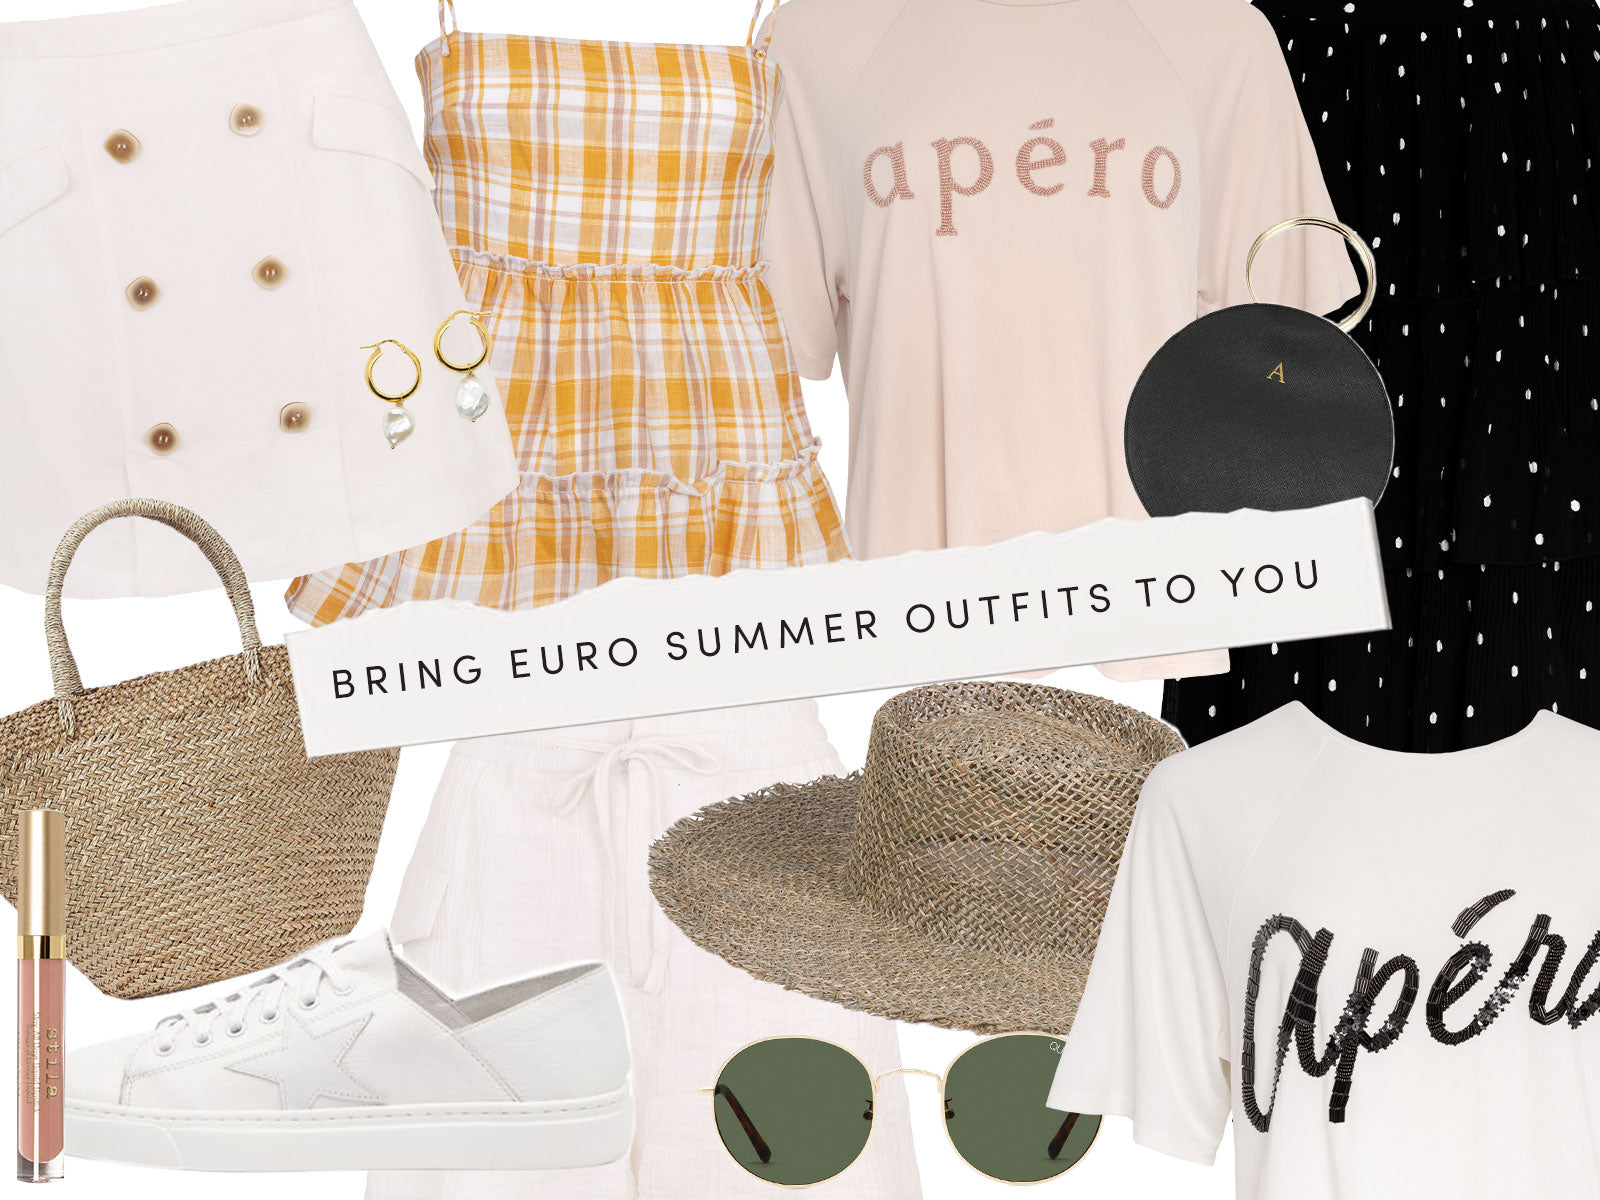 Euro Summer Outfits